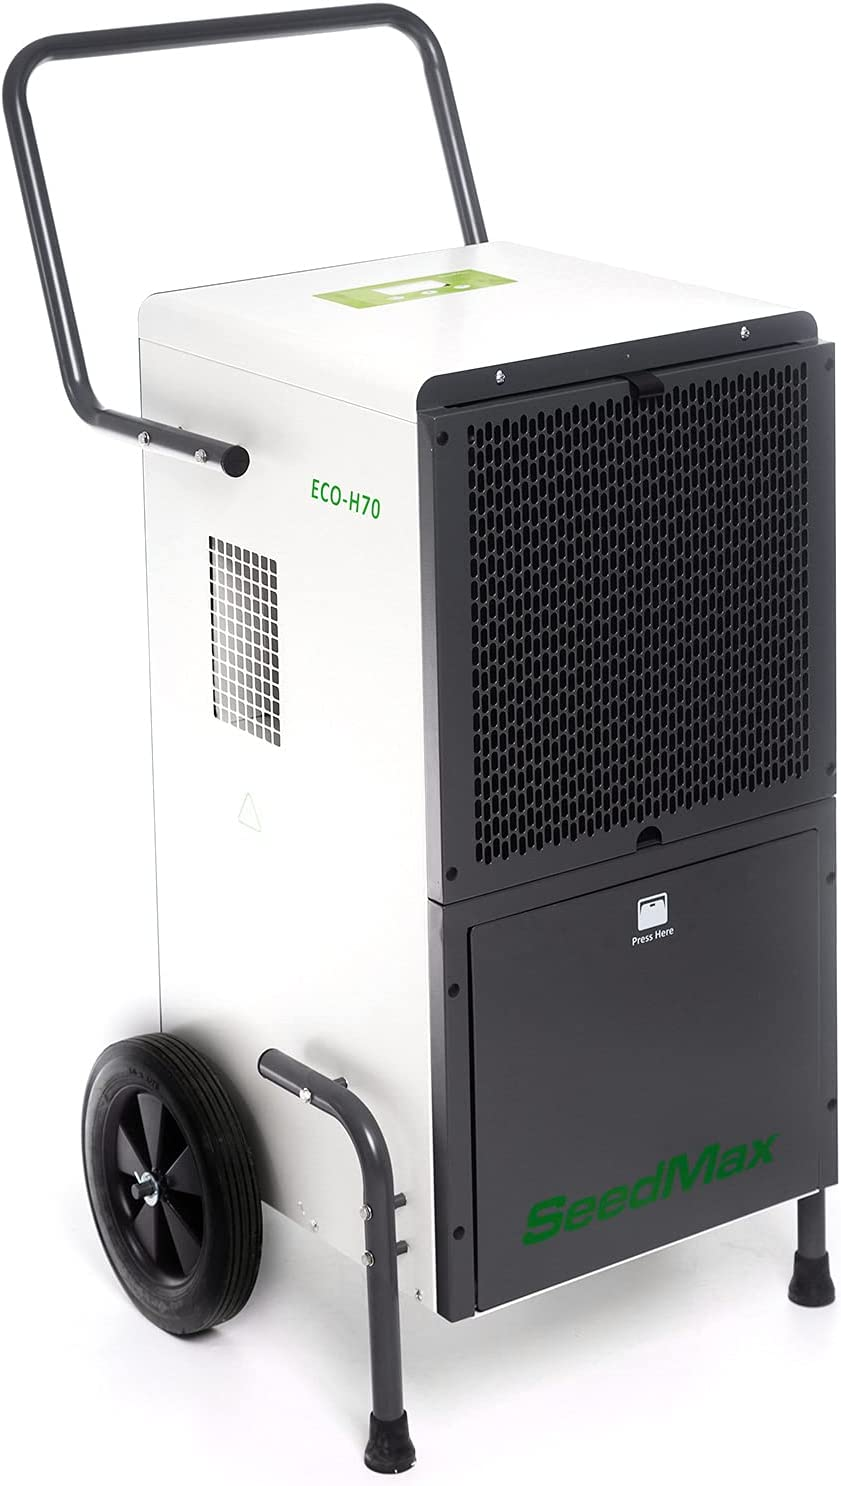 SeedMax ECO-H70 138 Pints Mobile f Commercial Free Shipping New Dehumidifier Store Steel